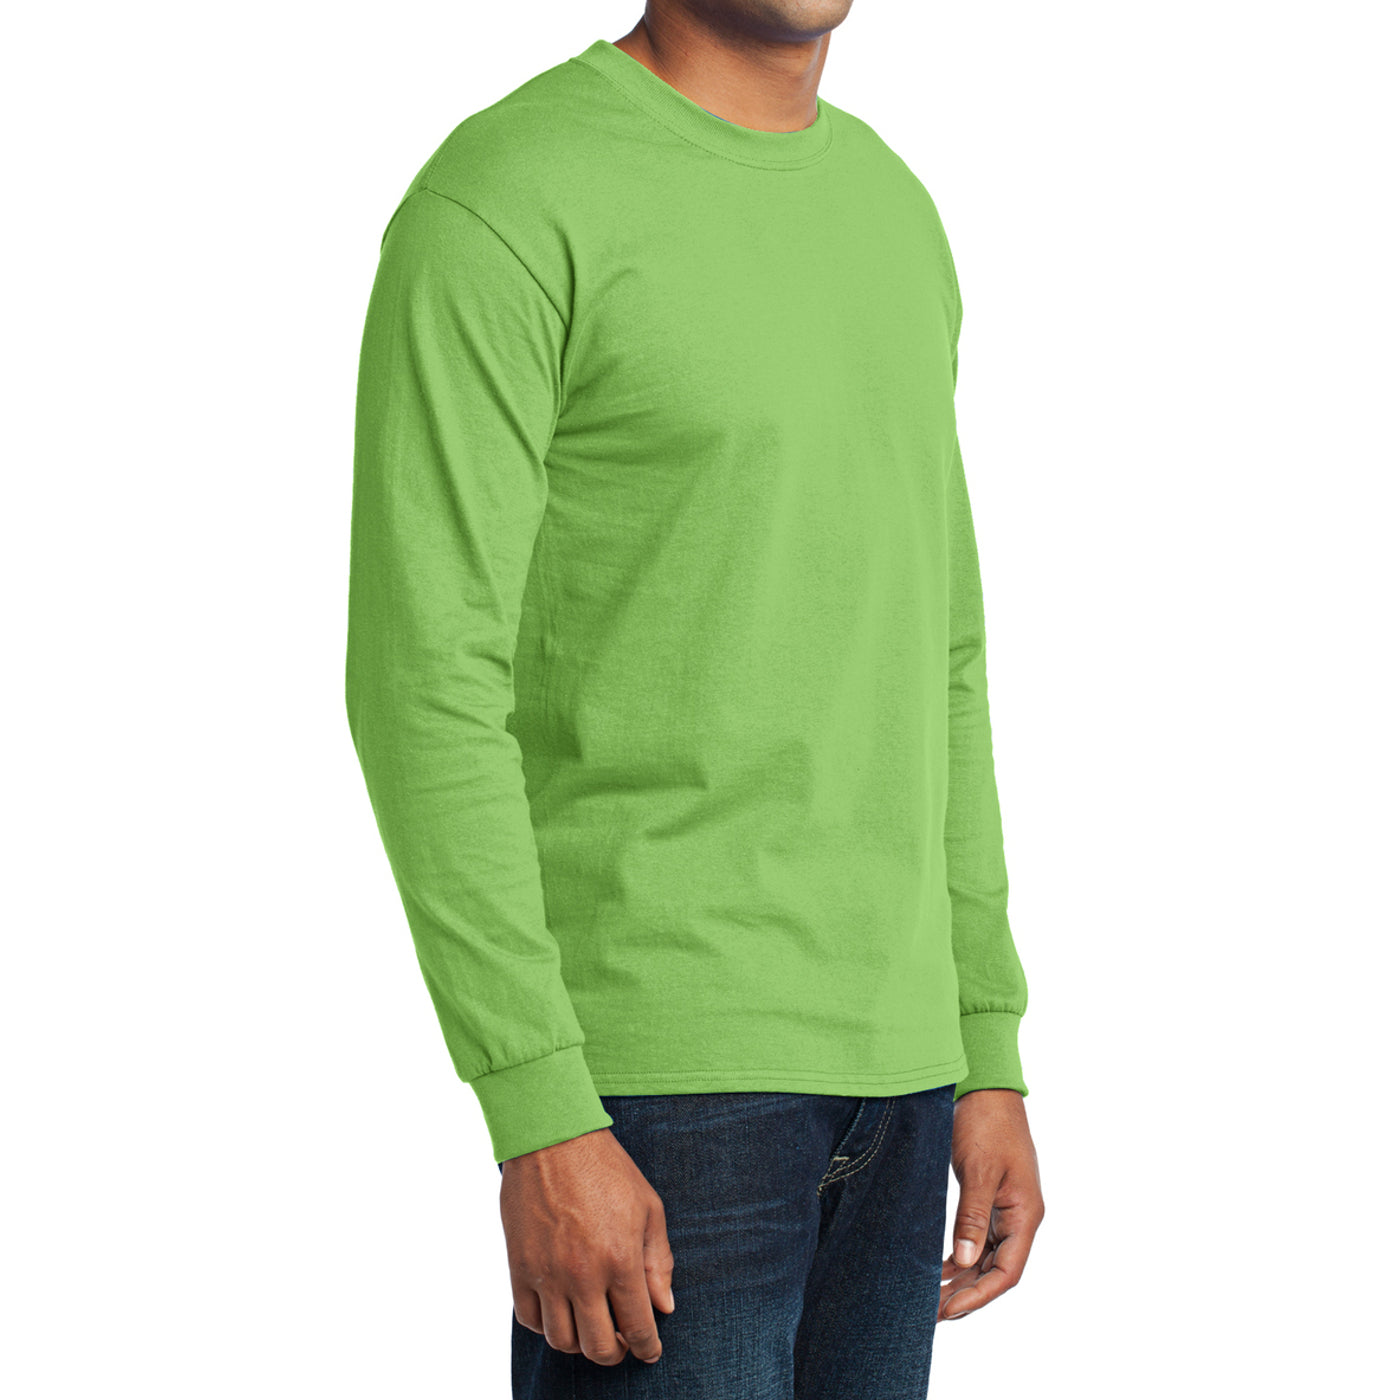 Men's Long Sleeve Core Blend Tee - Lime – Side